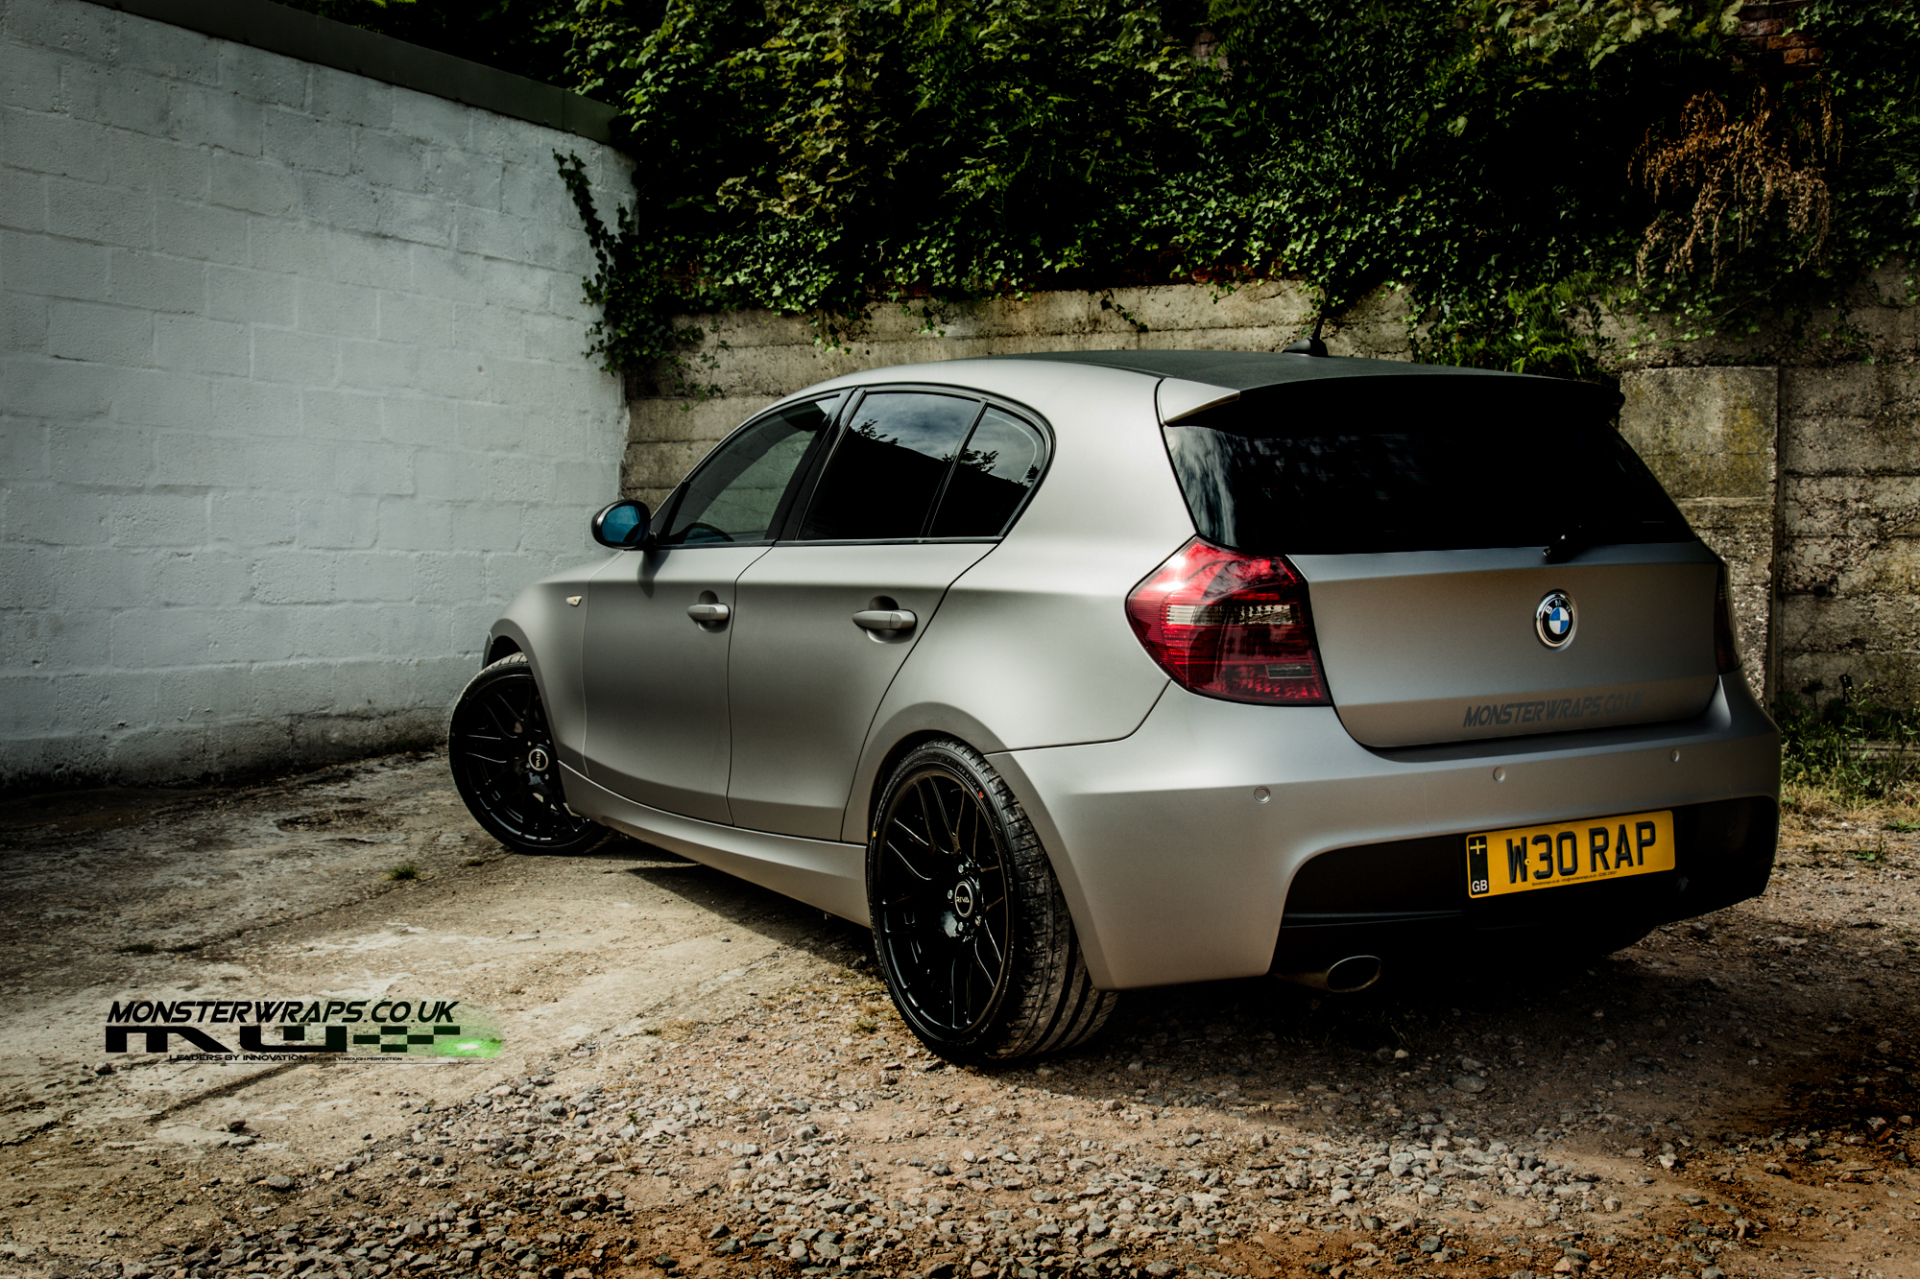 BMW 1 Series E87 Matte grey aluminium wrap 3M monsterwraps